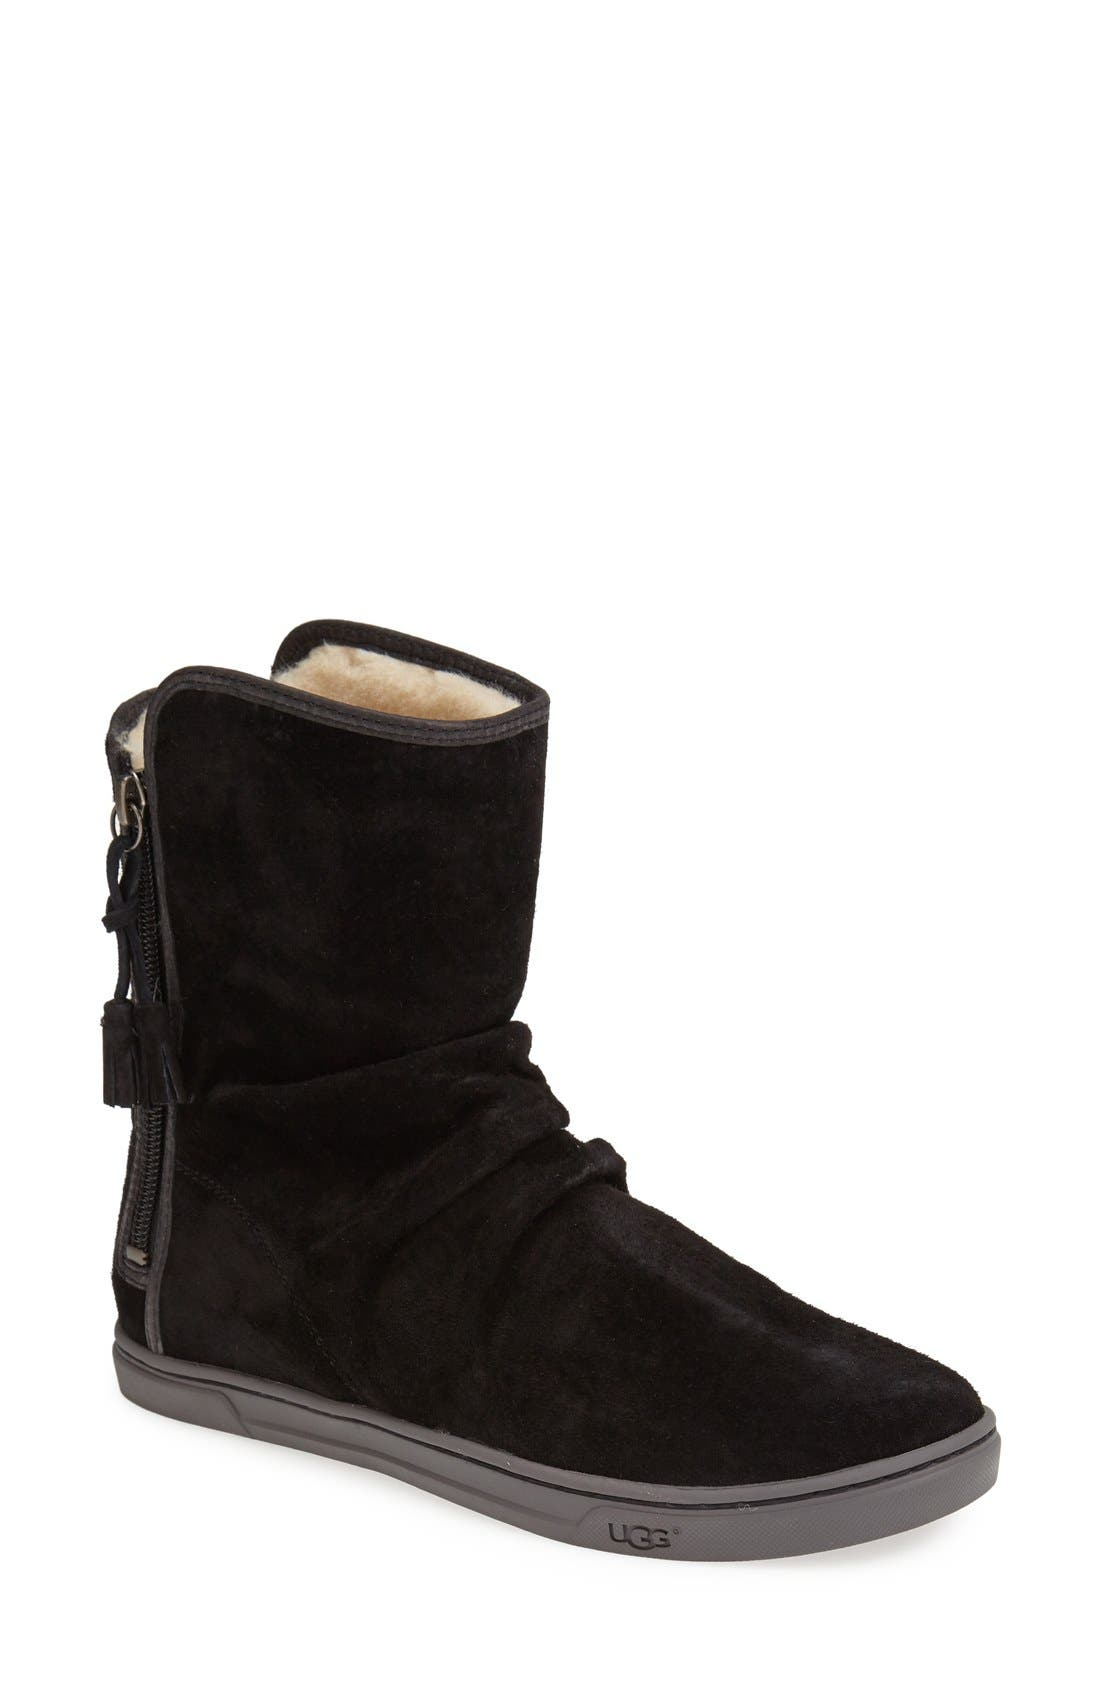 Australia 'Becky' Water Resistant Suede Boot,                             Main thumbnail 1, color,                             001